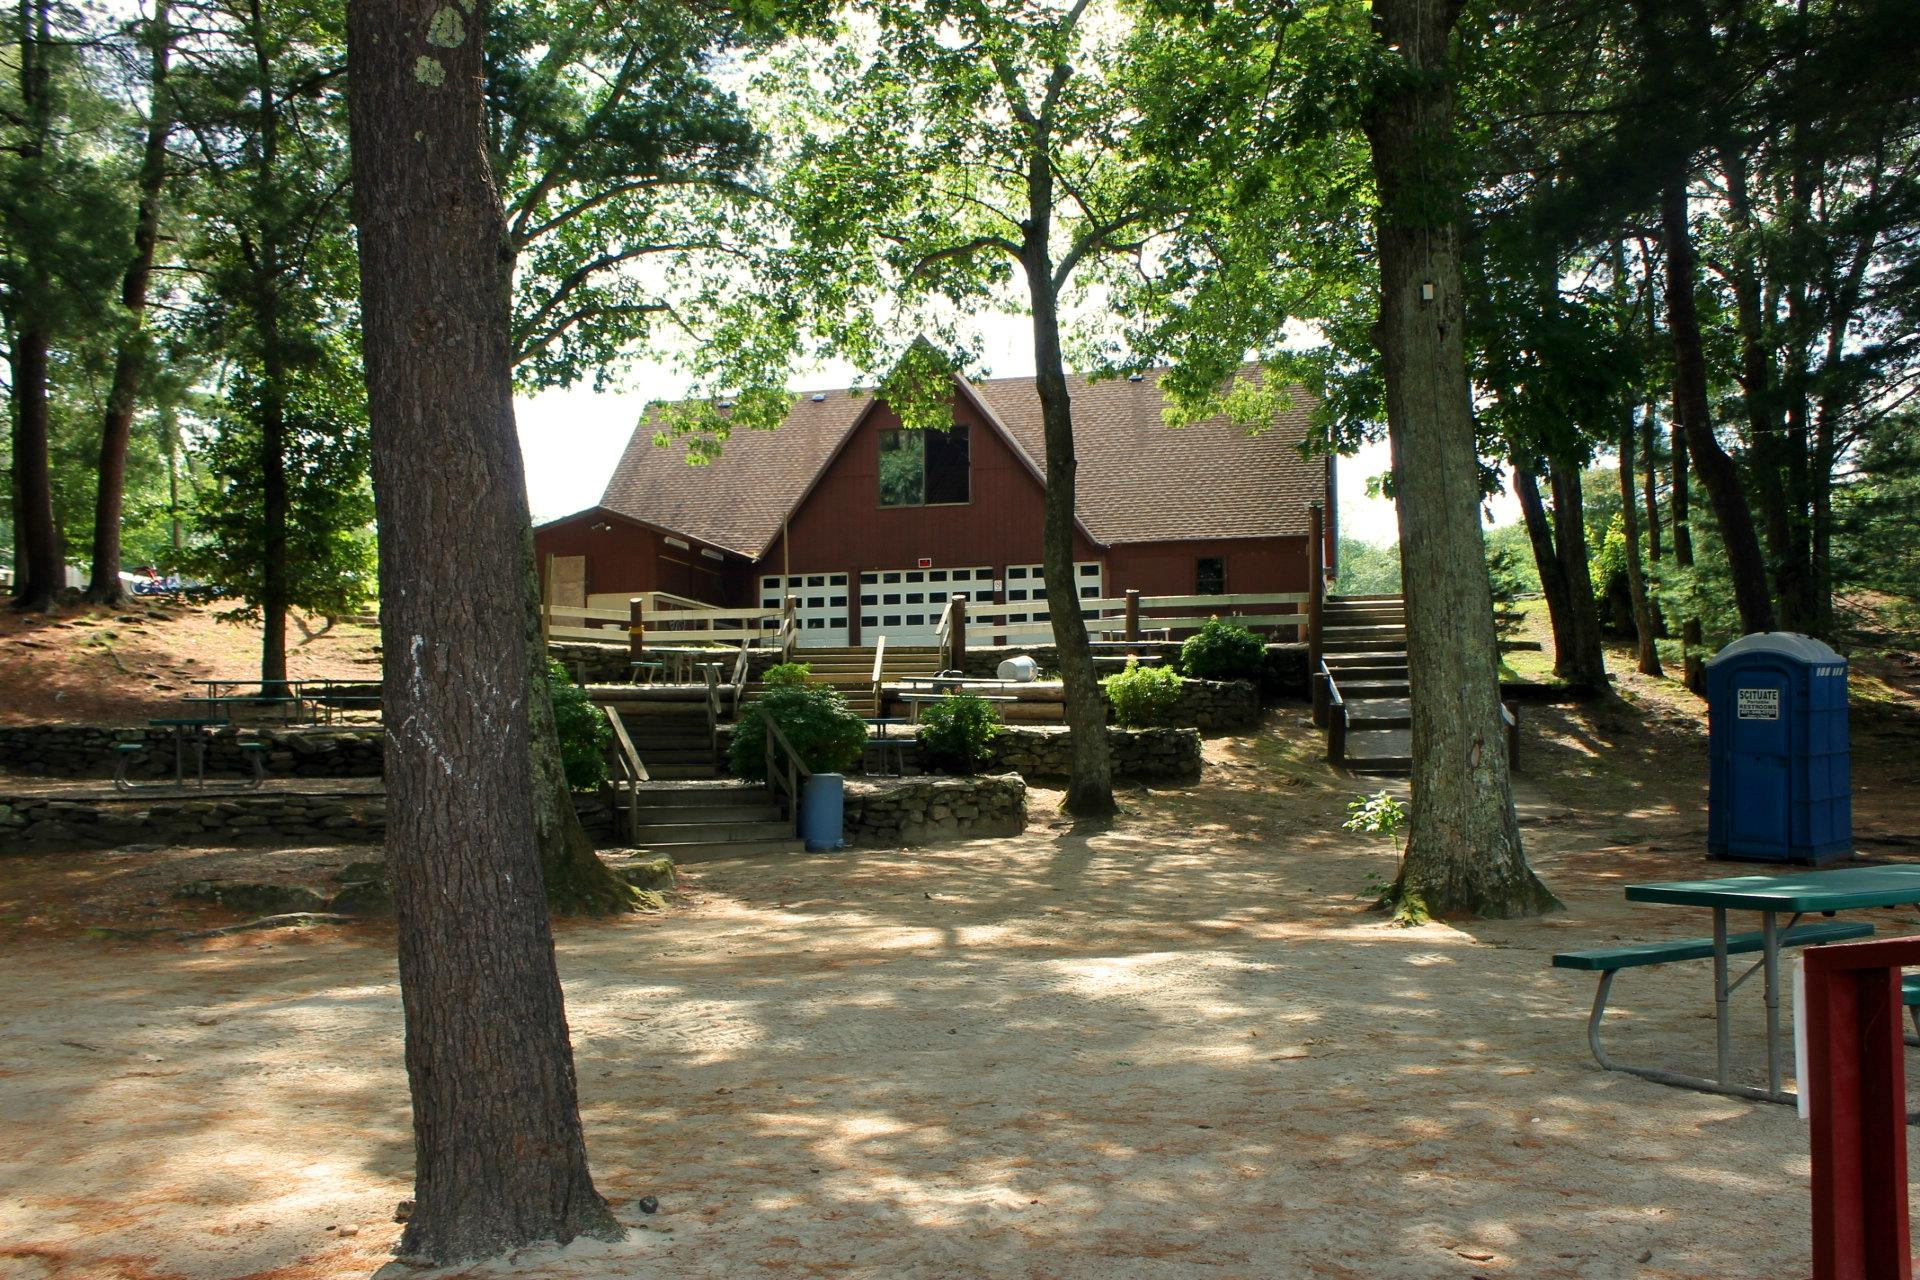 Holiday Acres Family Campground